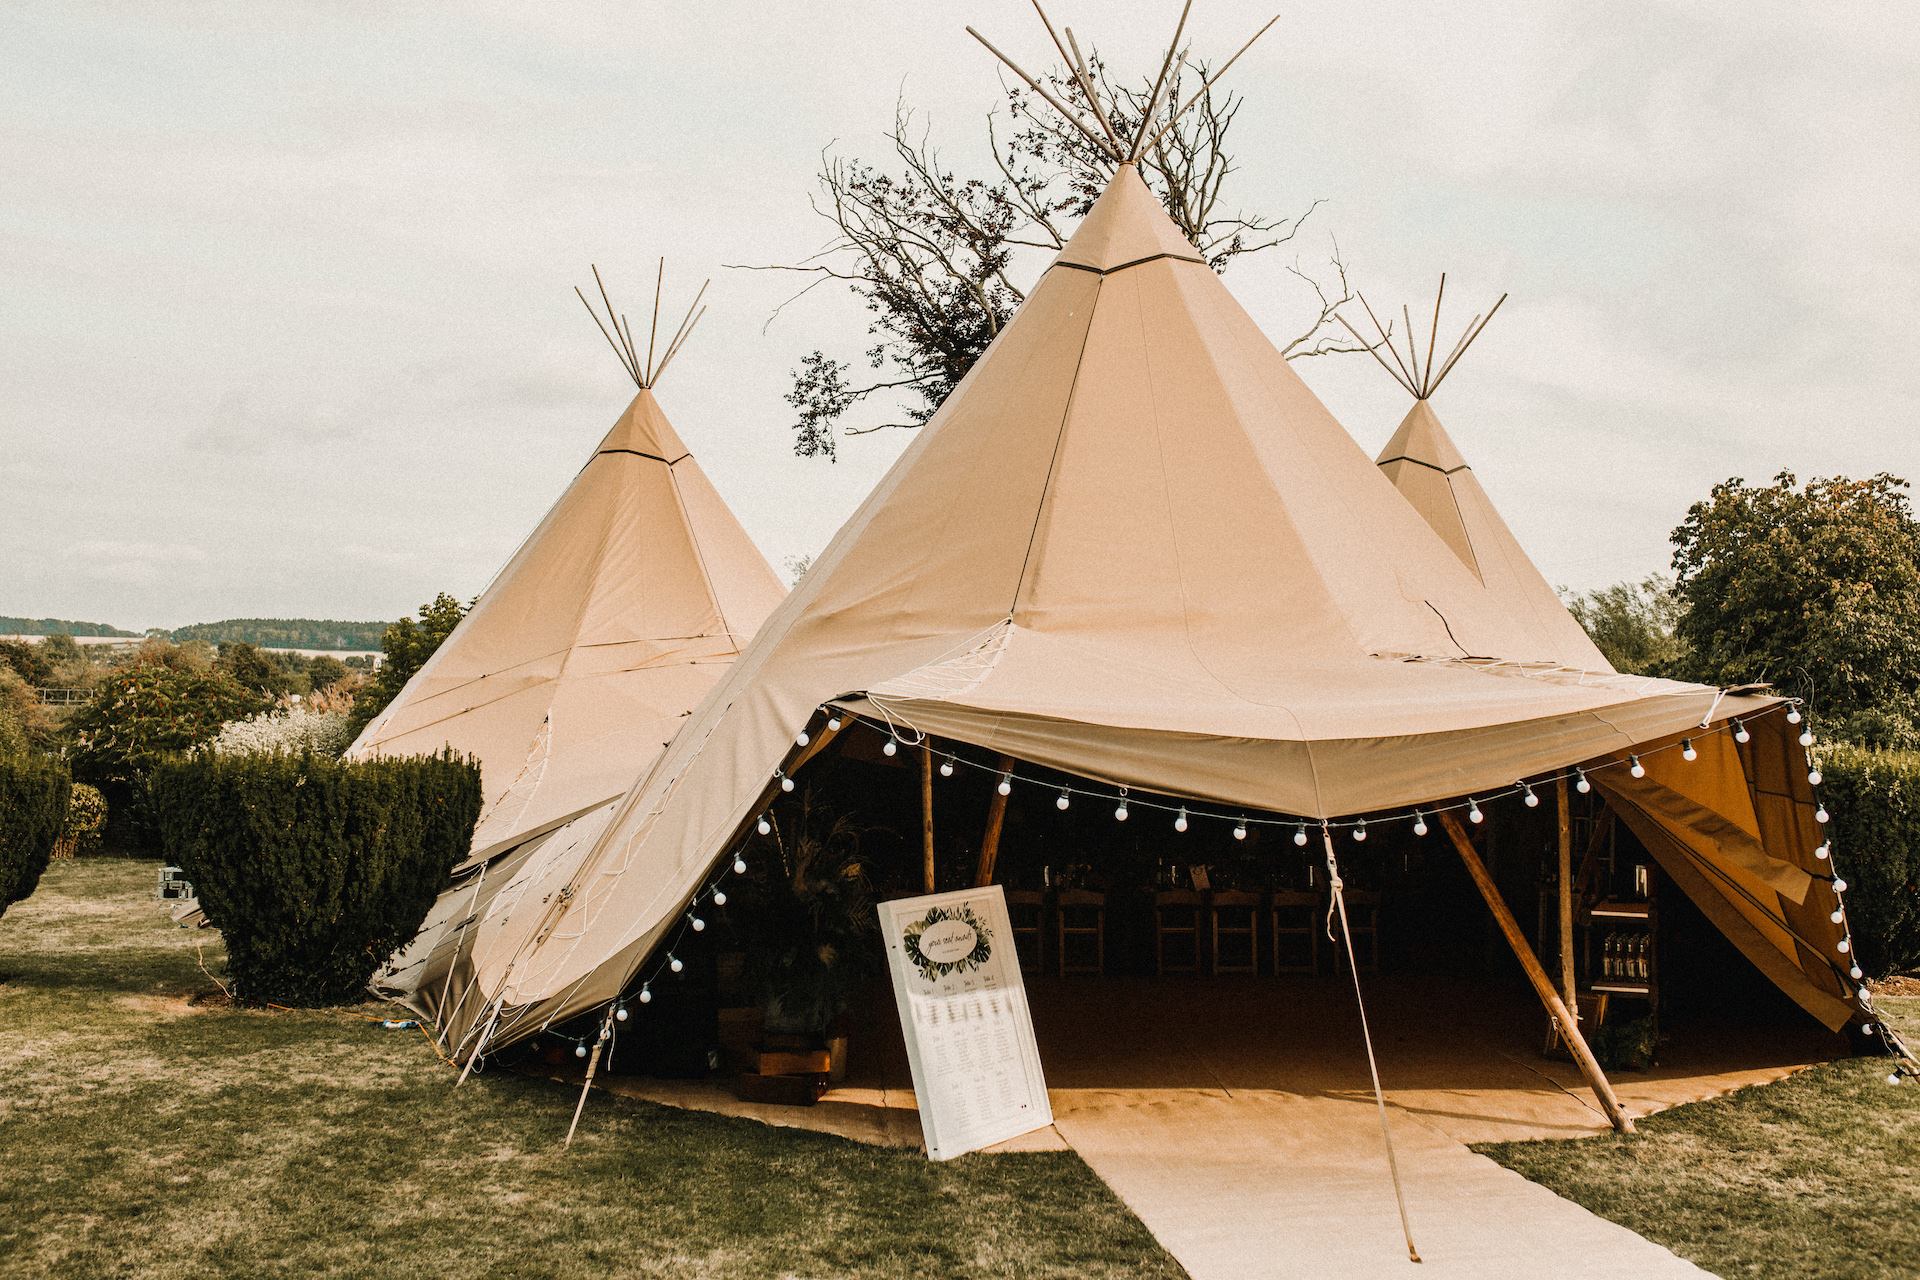 PapaKåta couple Hayley & Luke's Teepee Wedding in Ascott-Under-Wychwood, Oxon captured by Carla Blain Photography- Teepee exterior